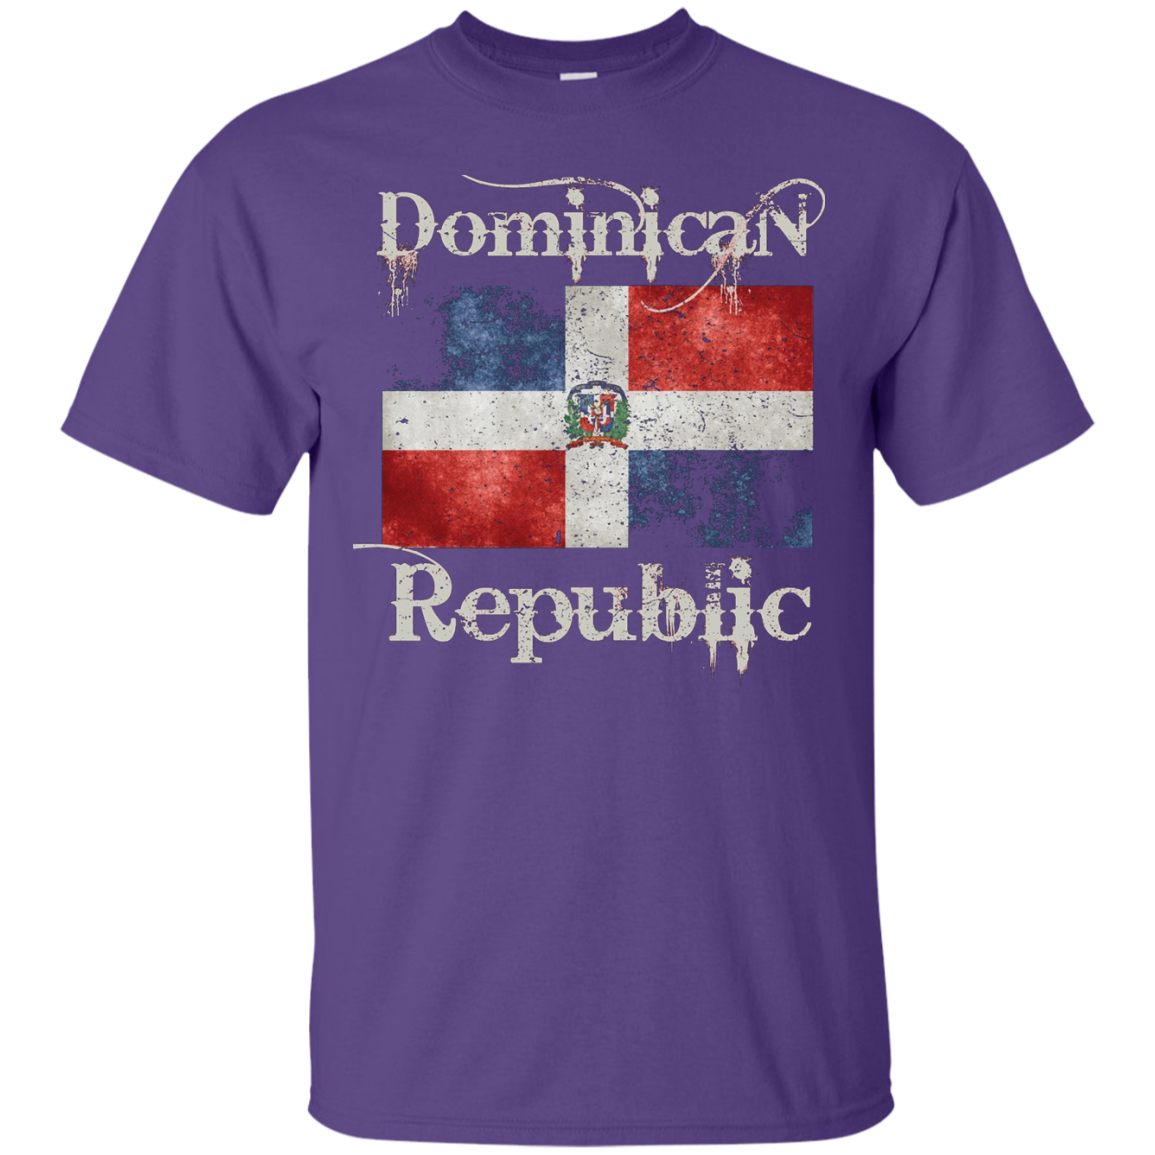 Dominican Republic Vintage T-Shirt